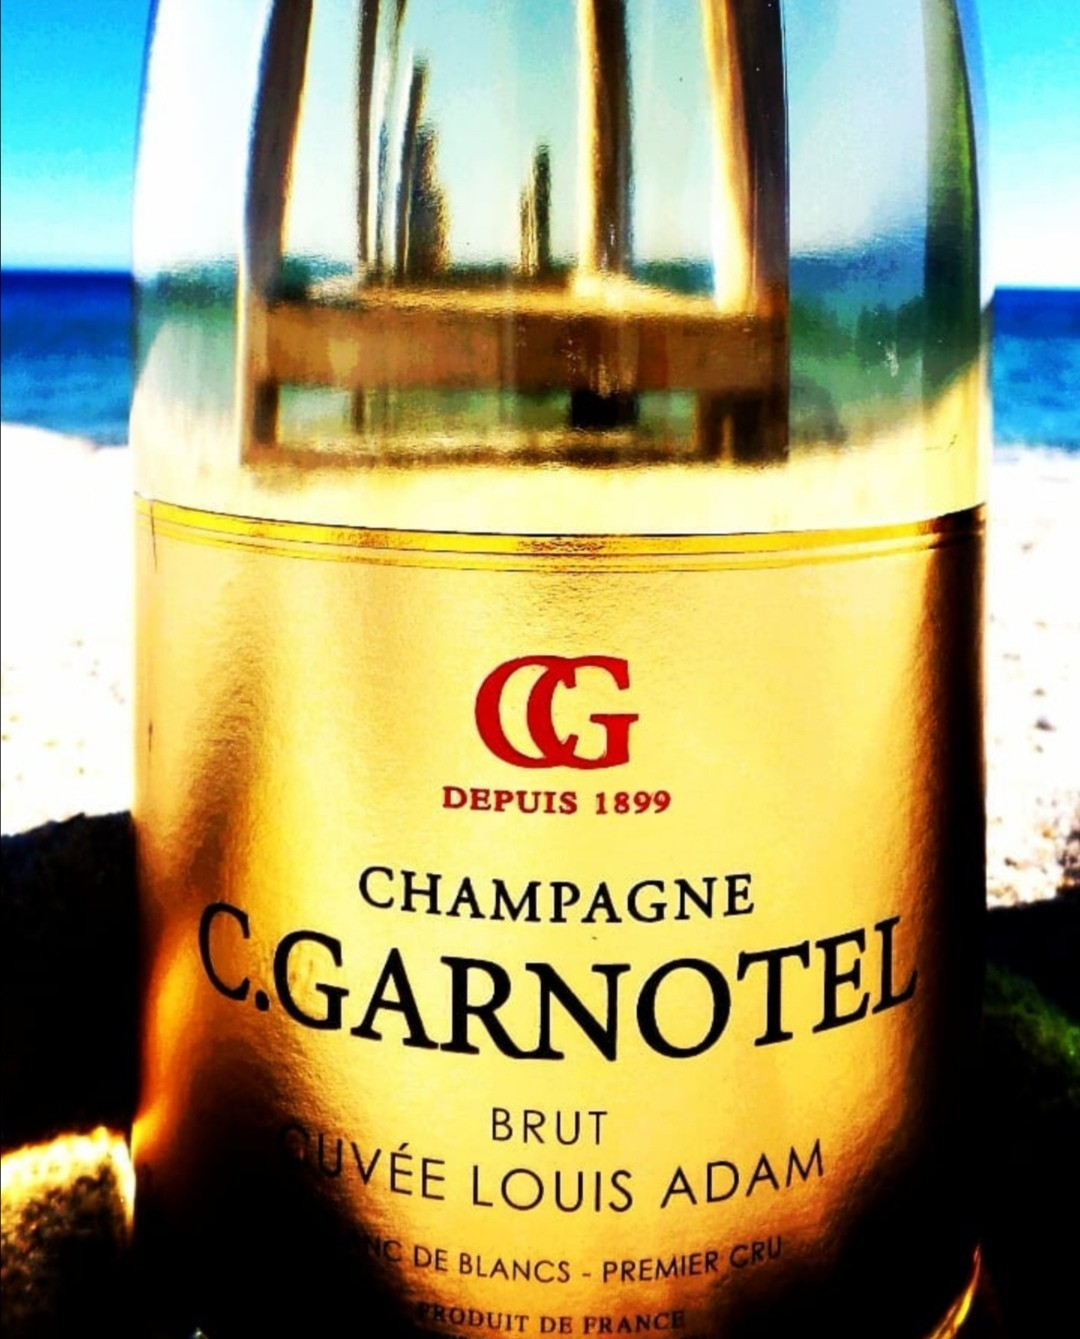 image-prop-contact-champagne-c-garnotel